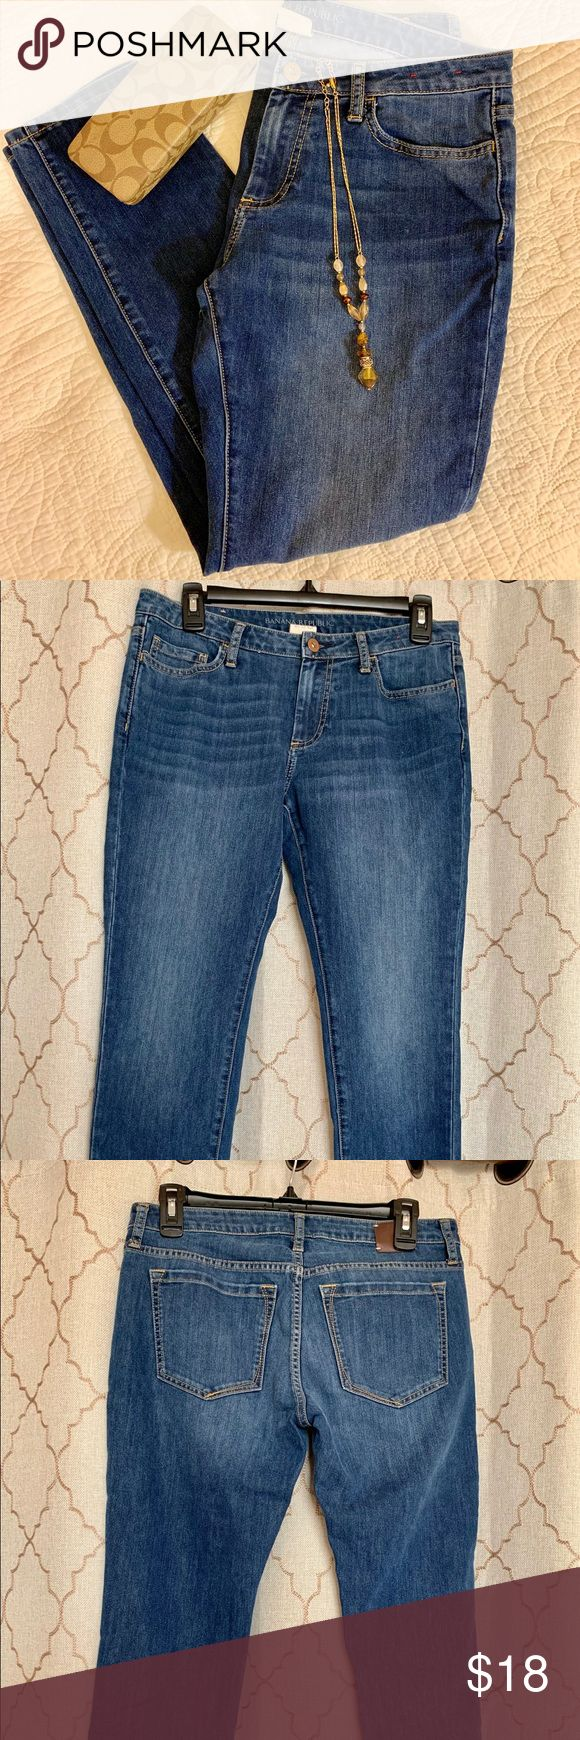 Banana Republic Ankle Jeans Light Wash Size 29P/S Ankle